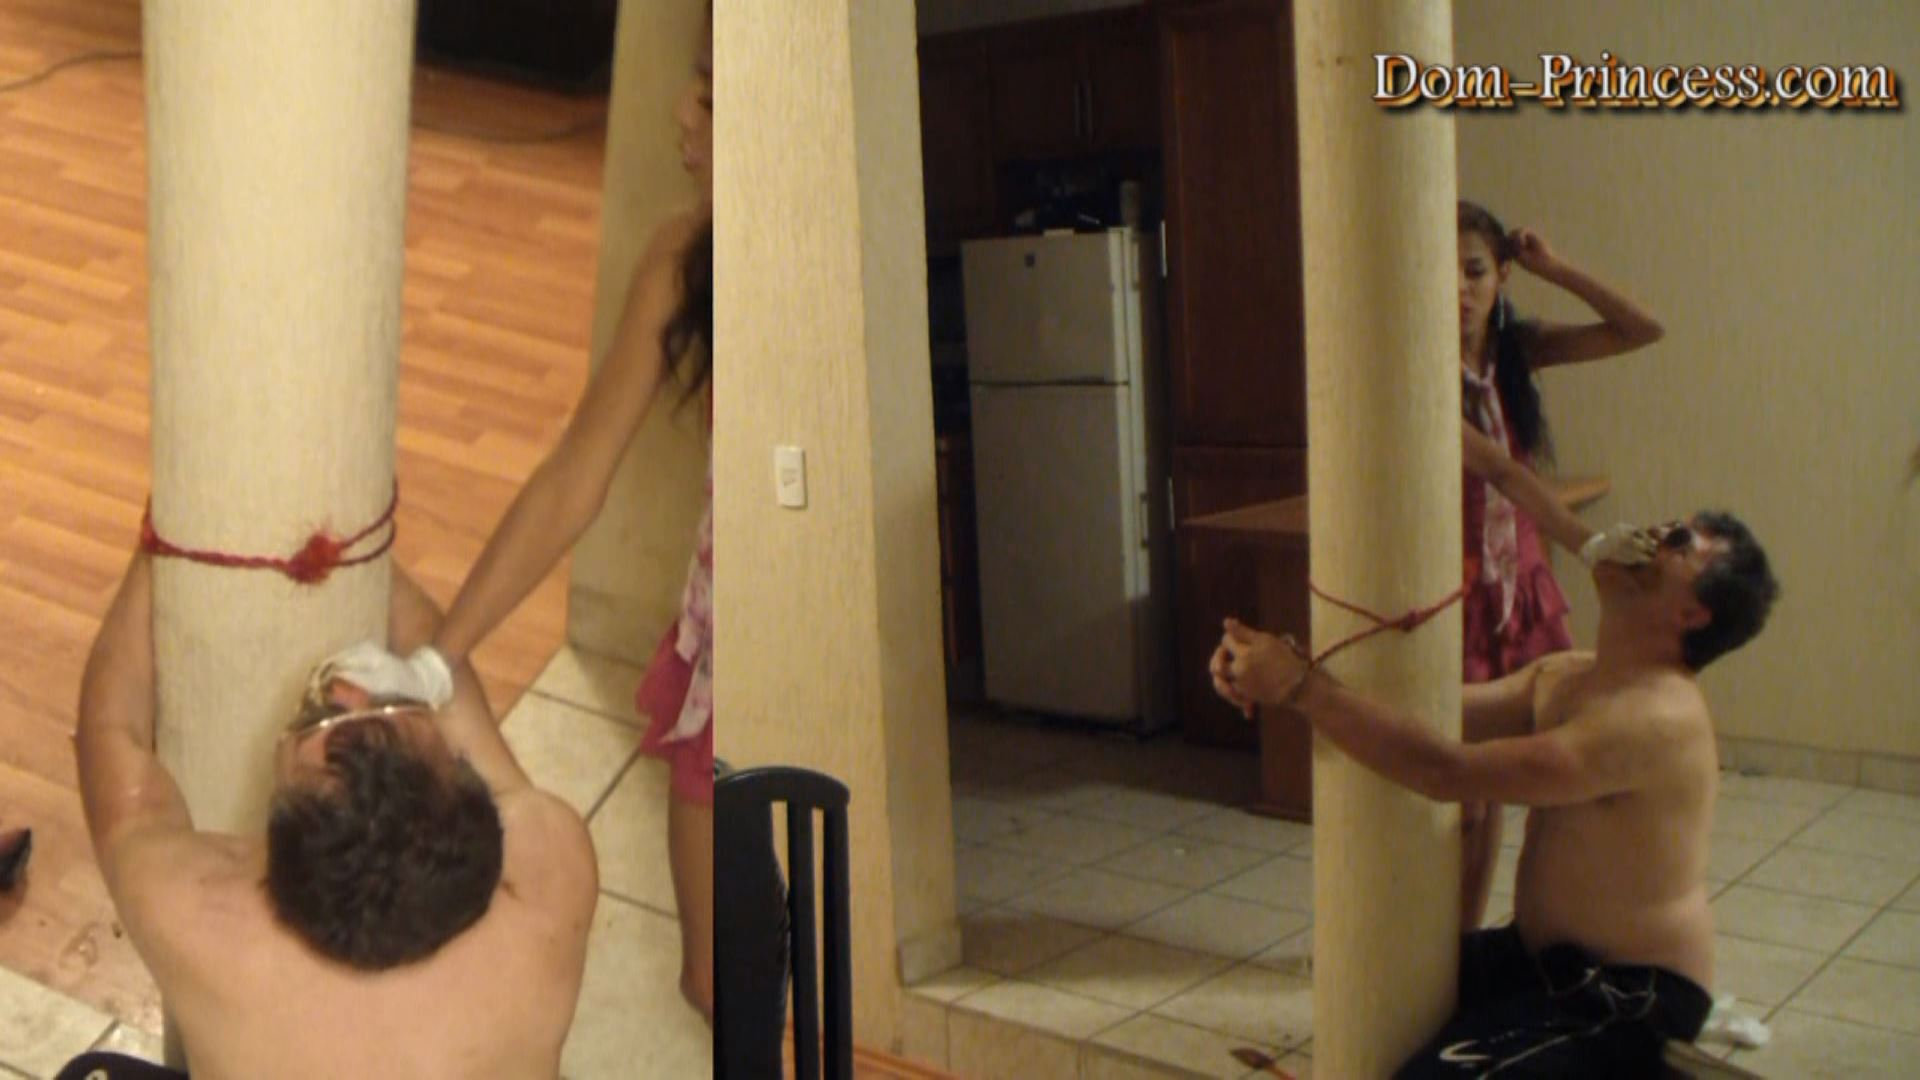 [DOM-PRINCESS] The Slave climing Poop Session Part 2 Chrystal [FULL HD][1080p][WMV]